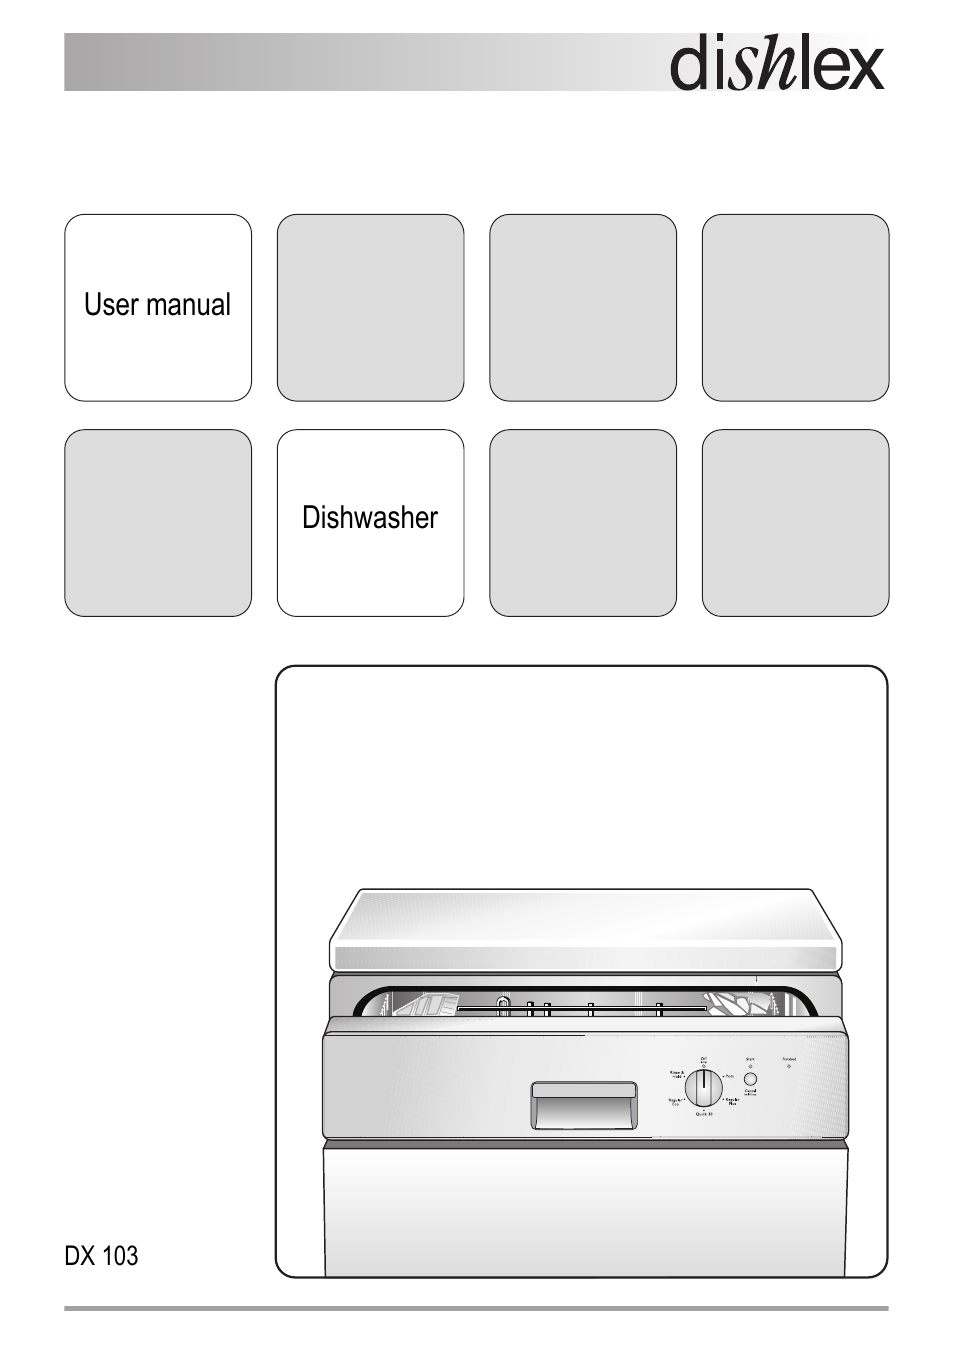 electrolux dishlex dx 103 user manual 16 pages rh manualsdir com